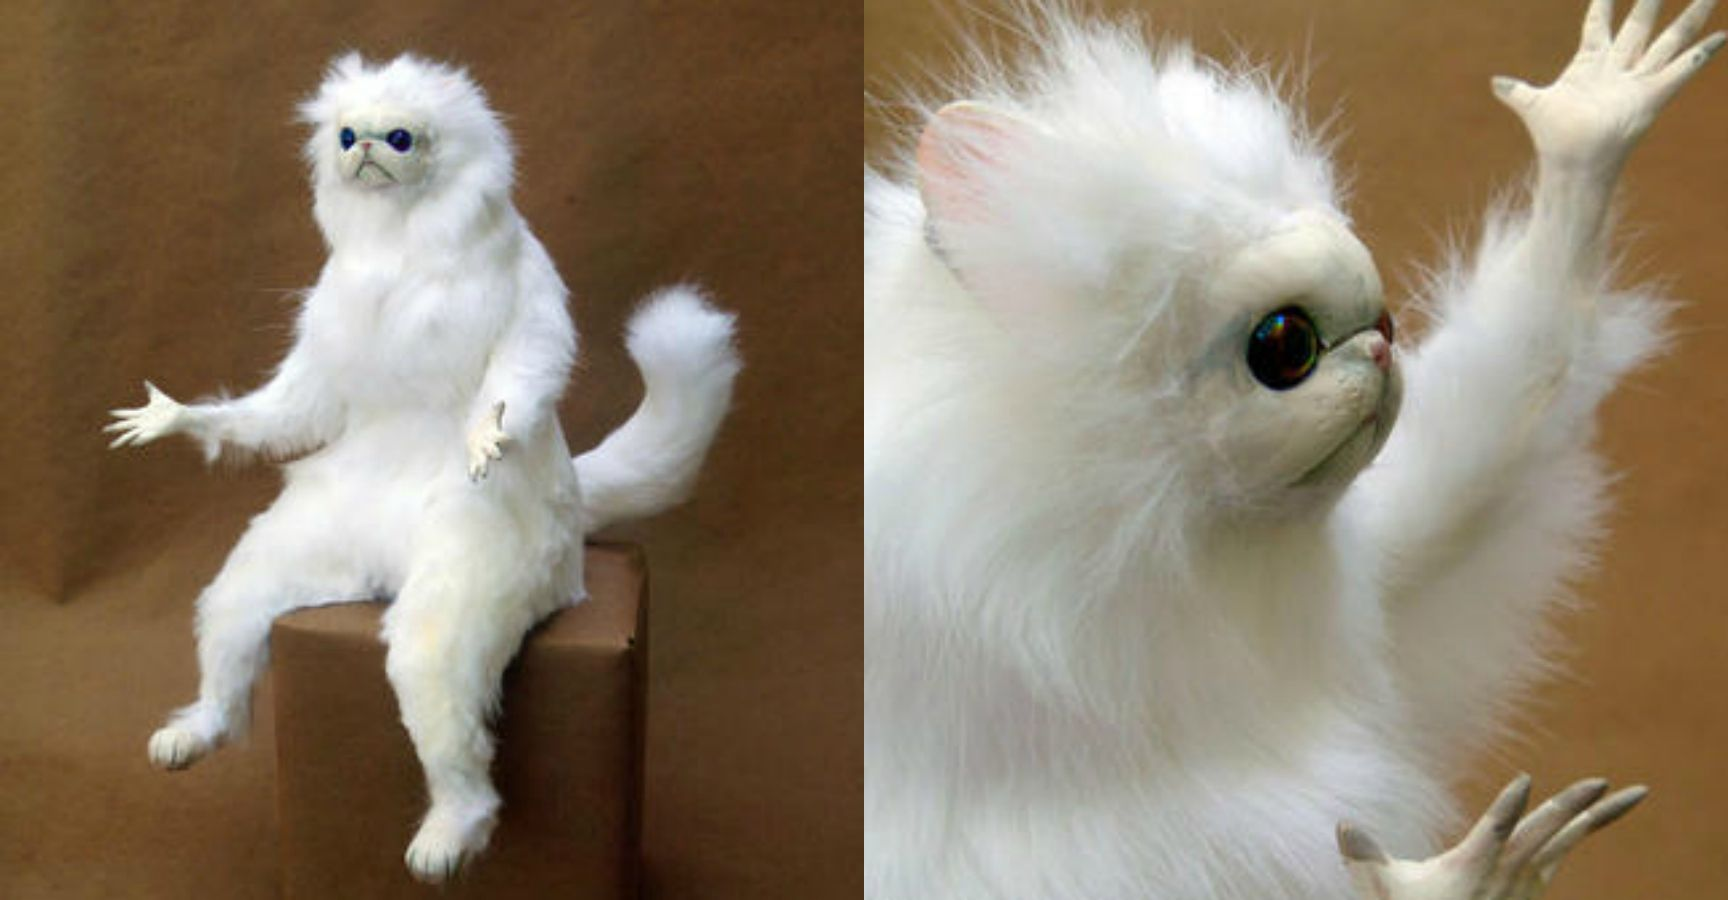 15 Hysterical Persian Cat Room Guardian Memes That Will Speak To Anyone